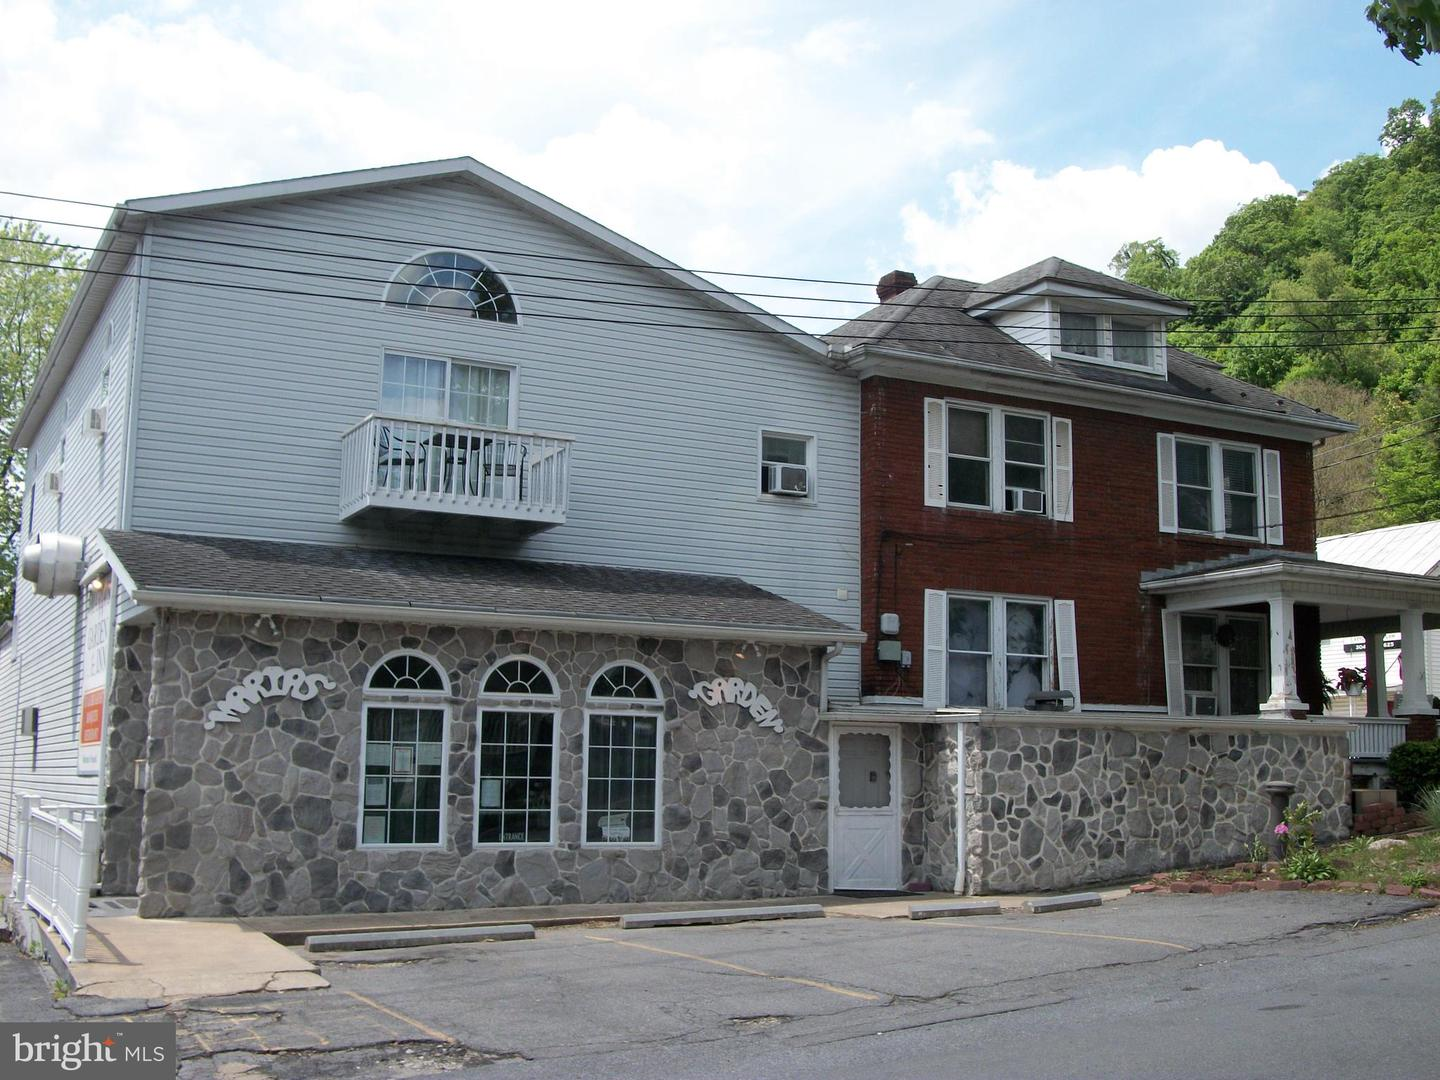 Commercial for Sale at 42 Independence St Berkeley Springs, West Virginia 25411 United States